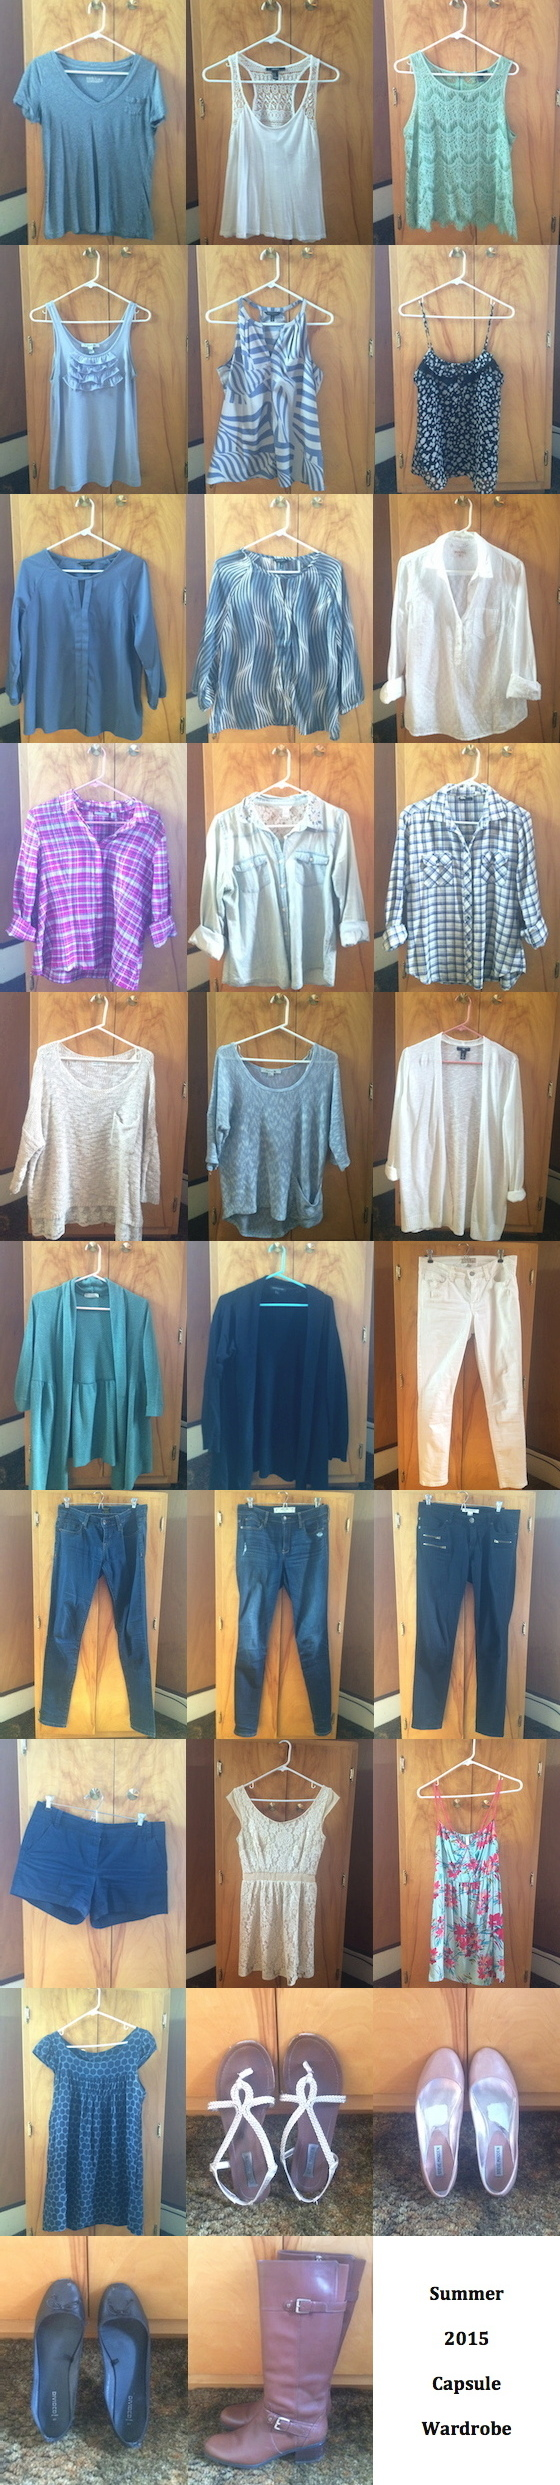 Summer 2015 Capsule Wardrobe | Glitter & Grace Blog